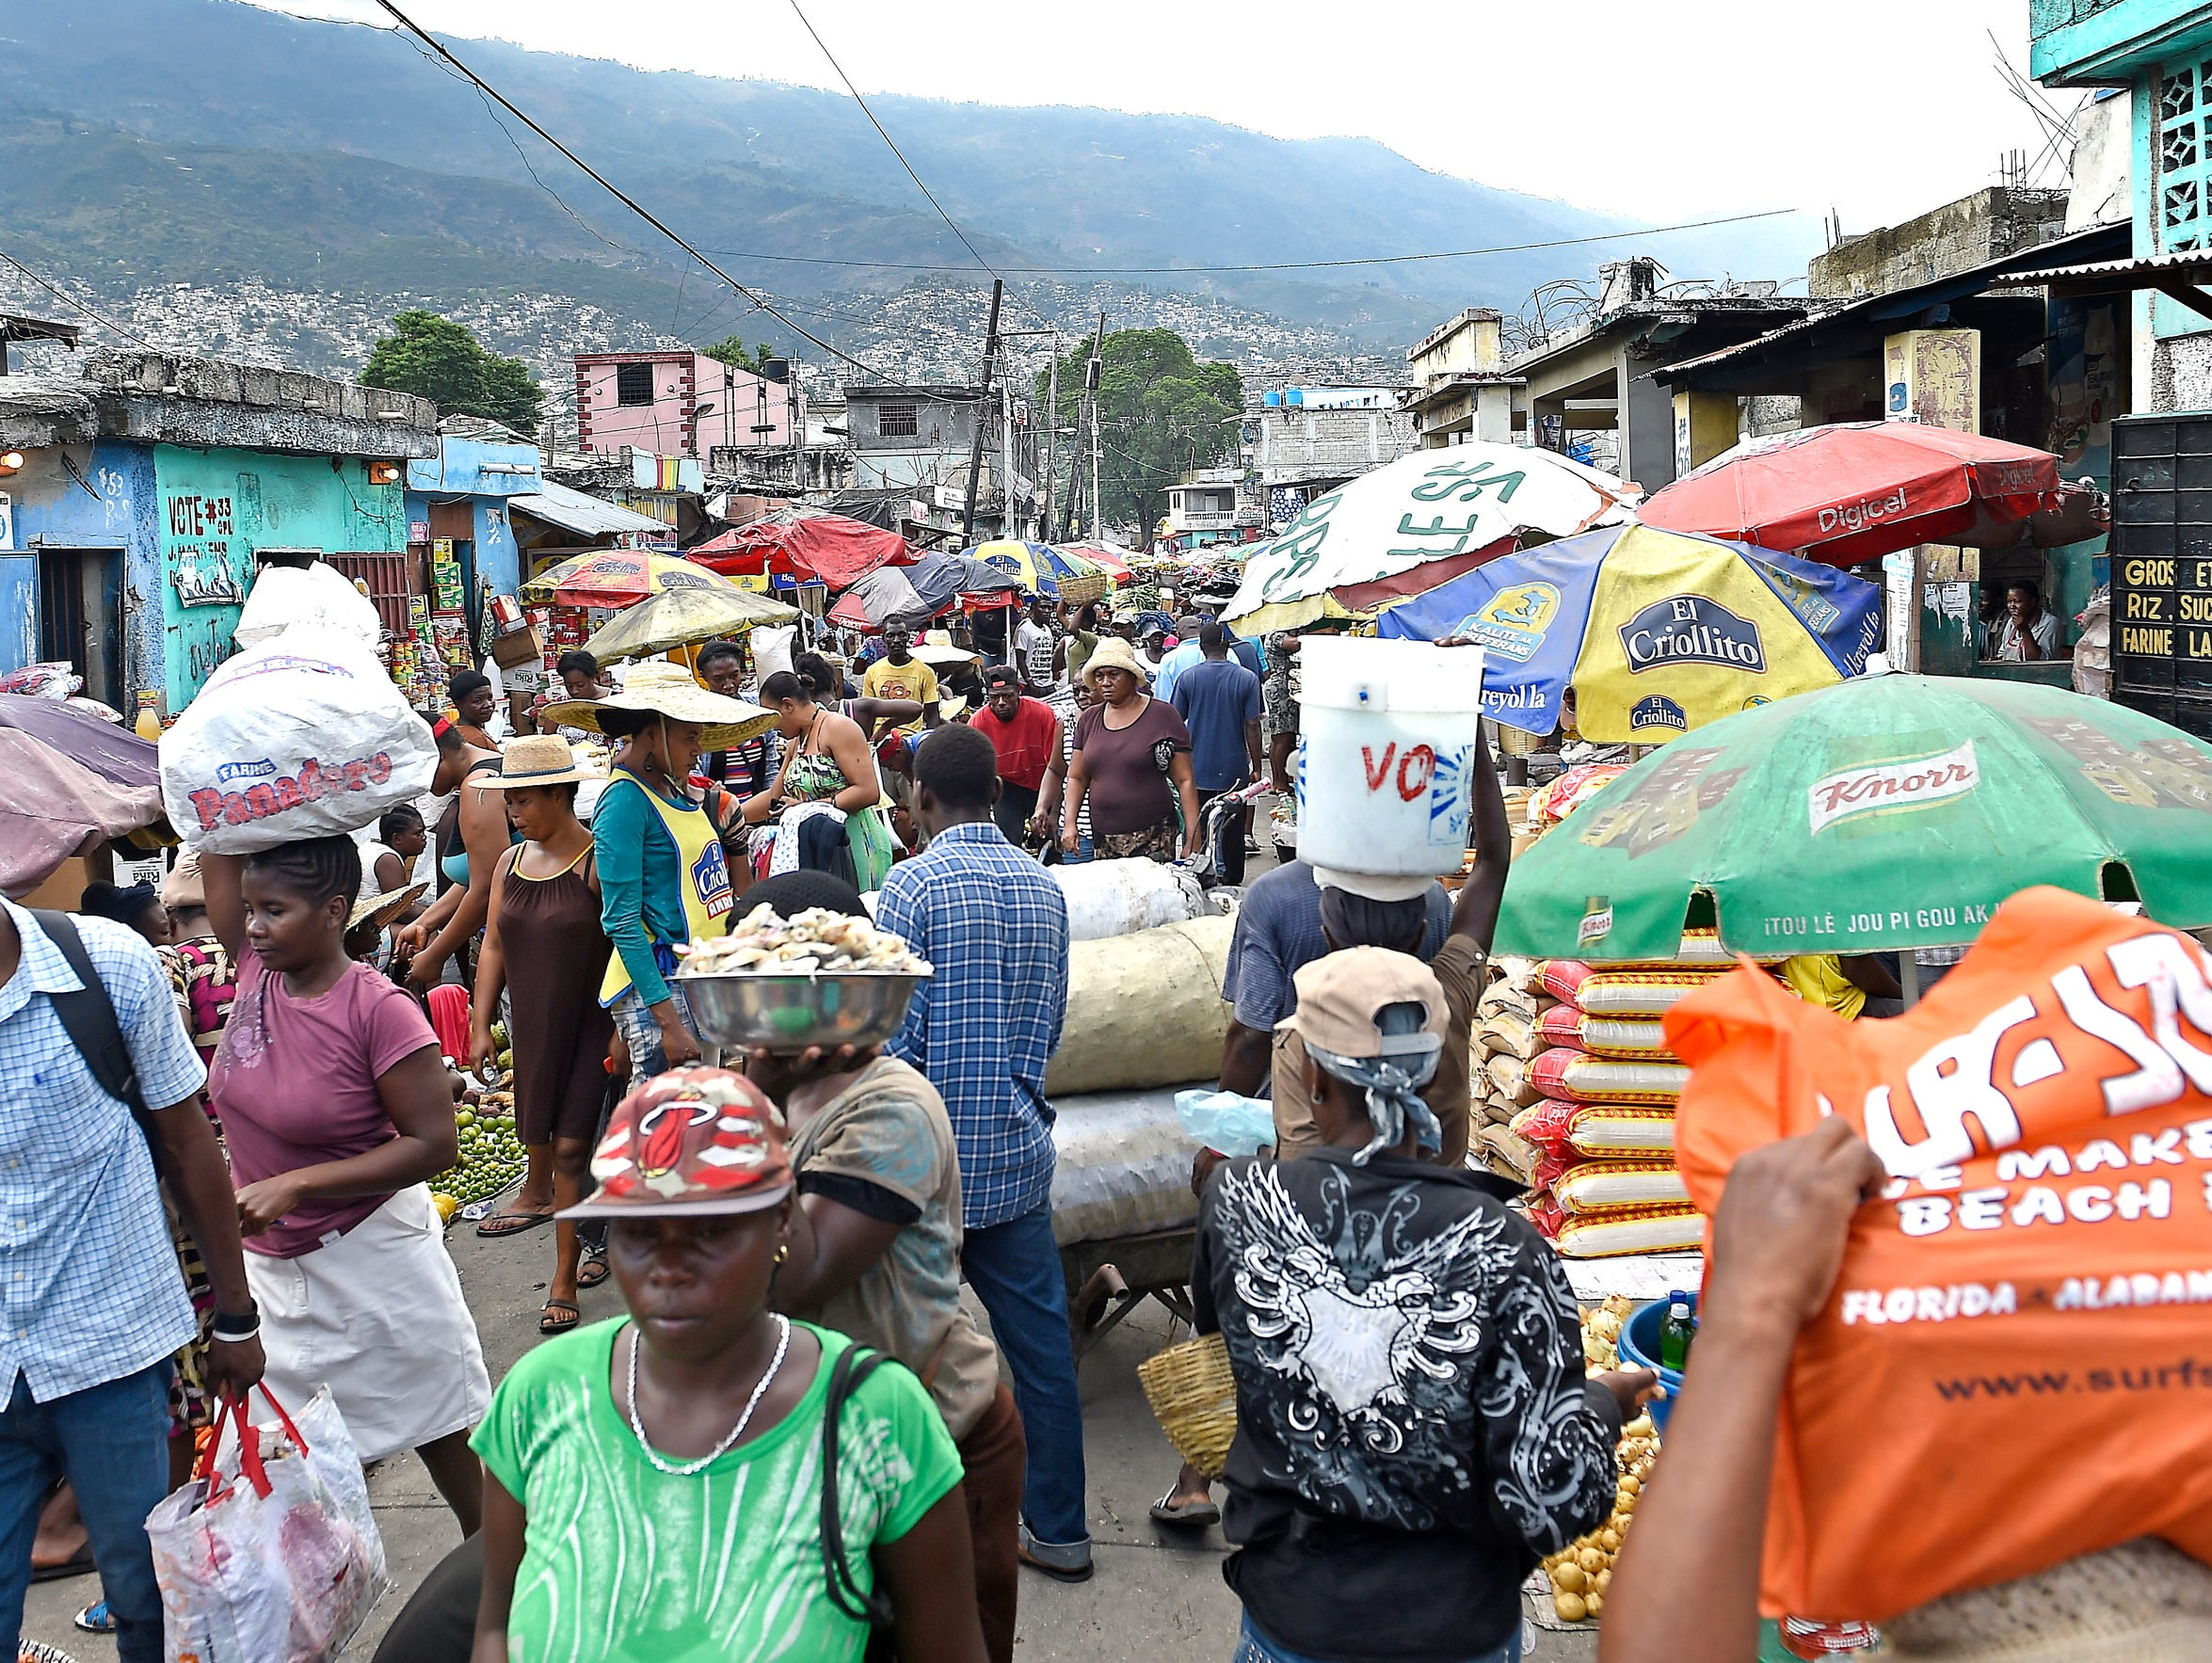 Shoppers and merchants navigate the close quarters